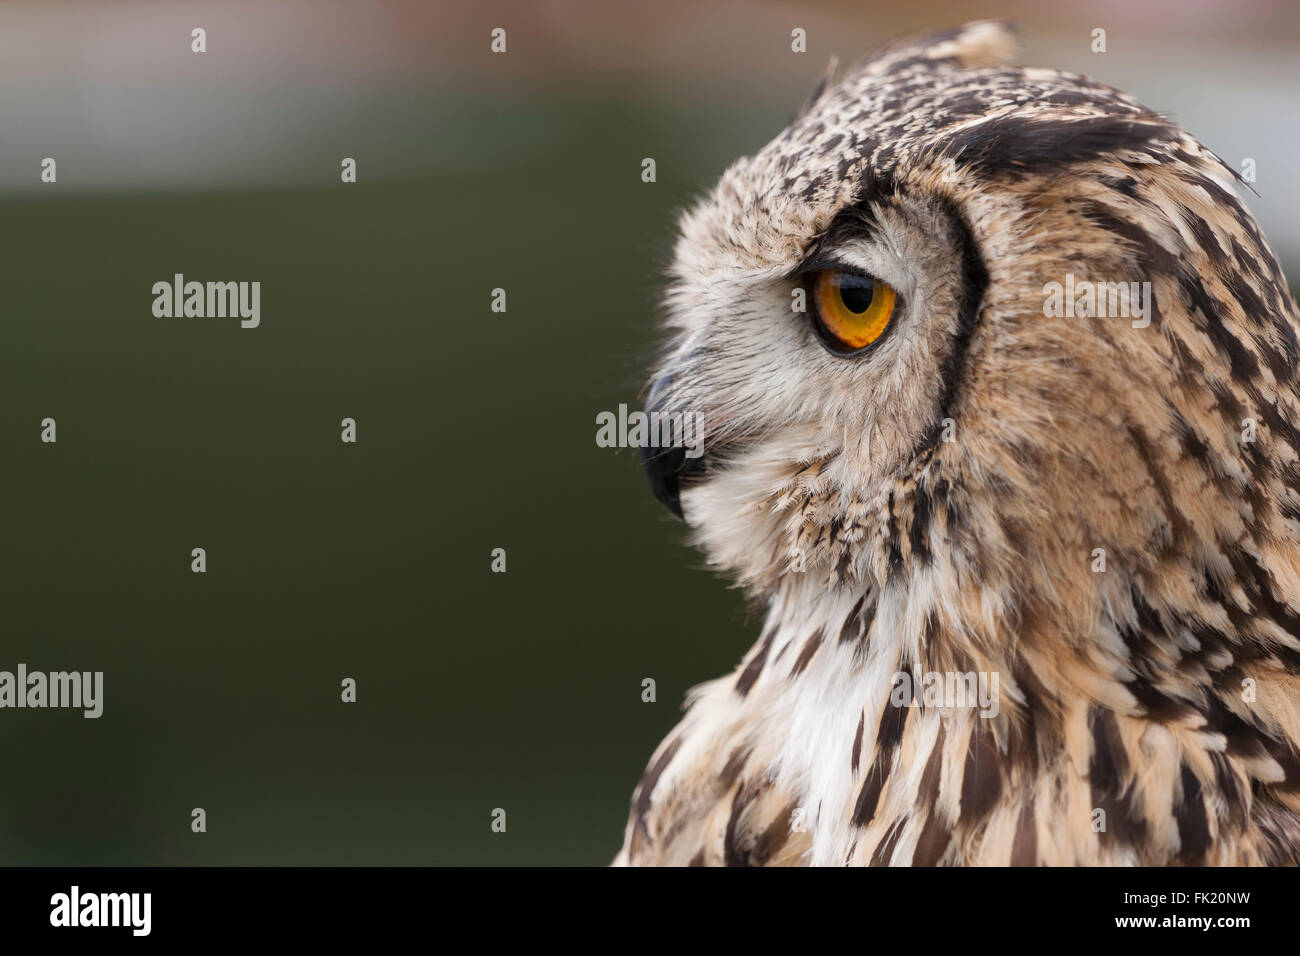 Indian Eagle Owl portrait showing it's curved beak and large eyes - Stock Image